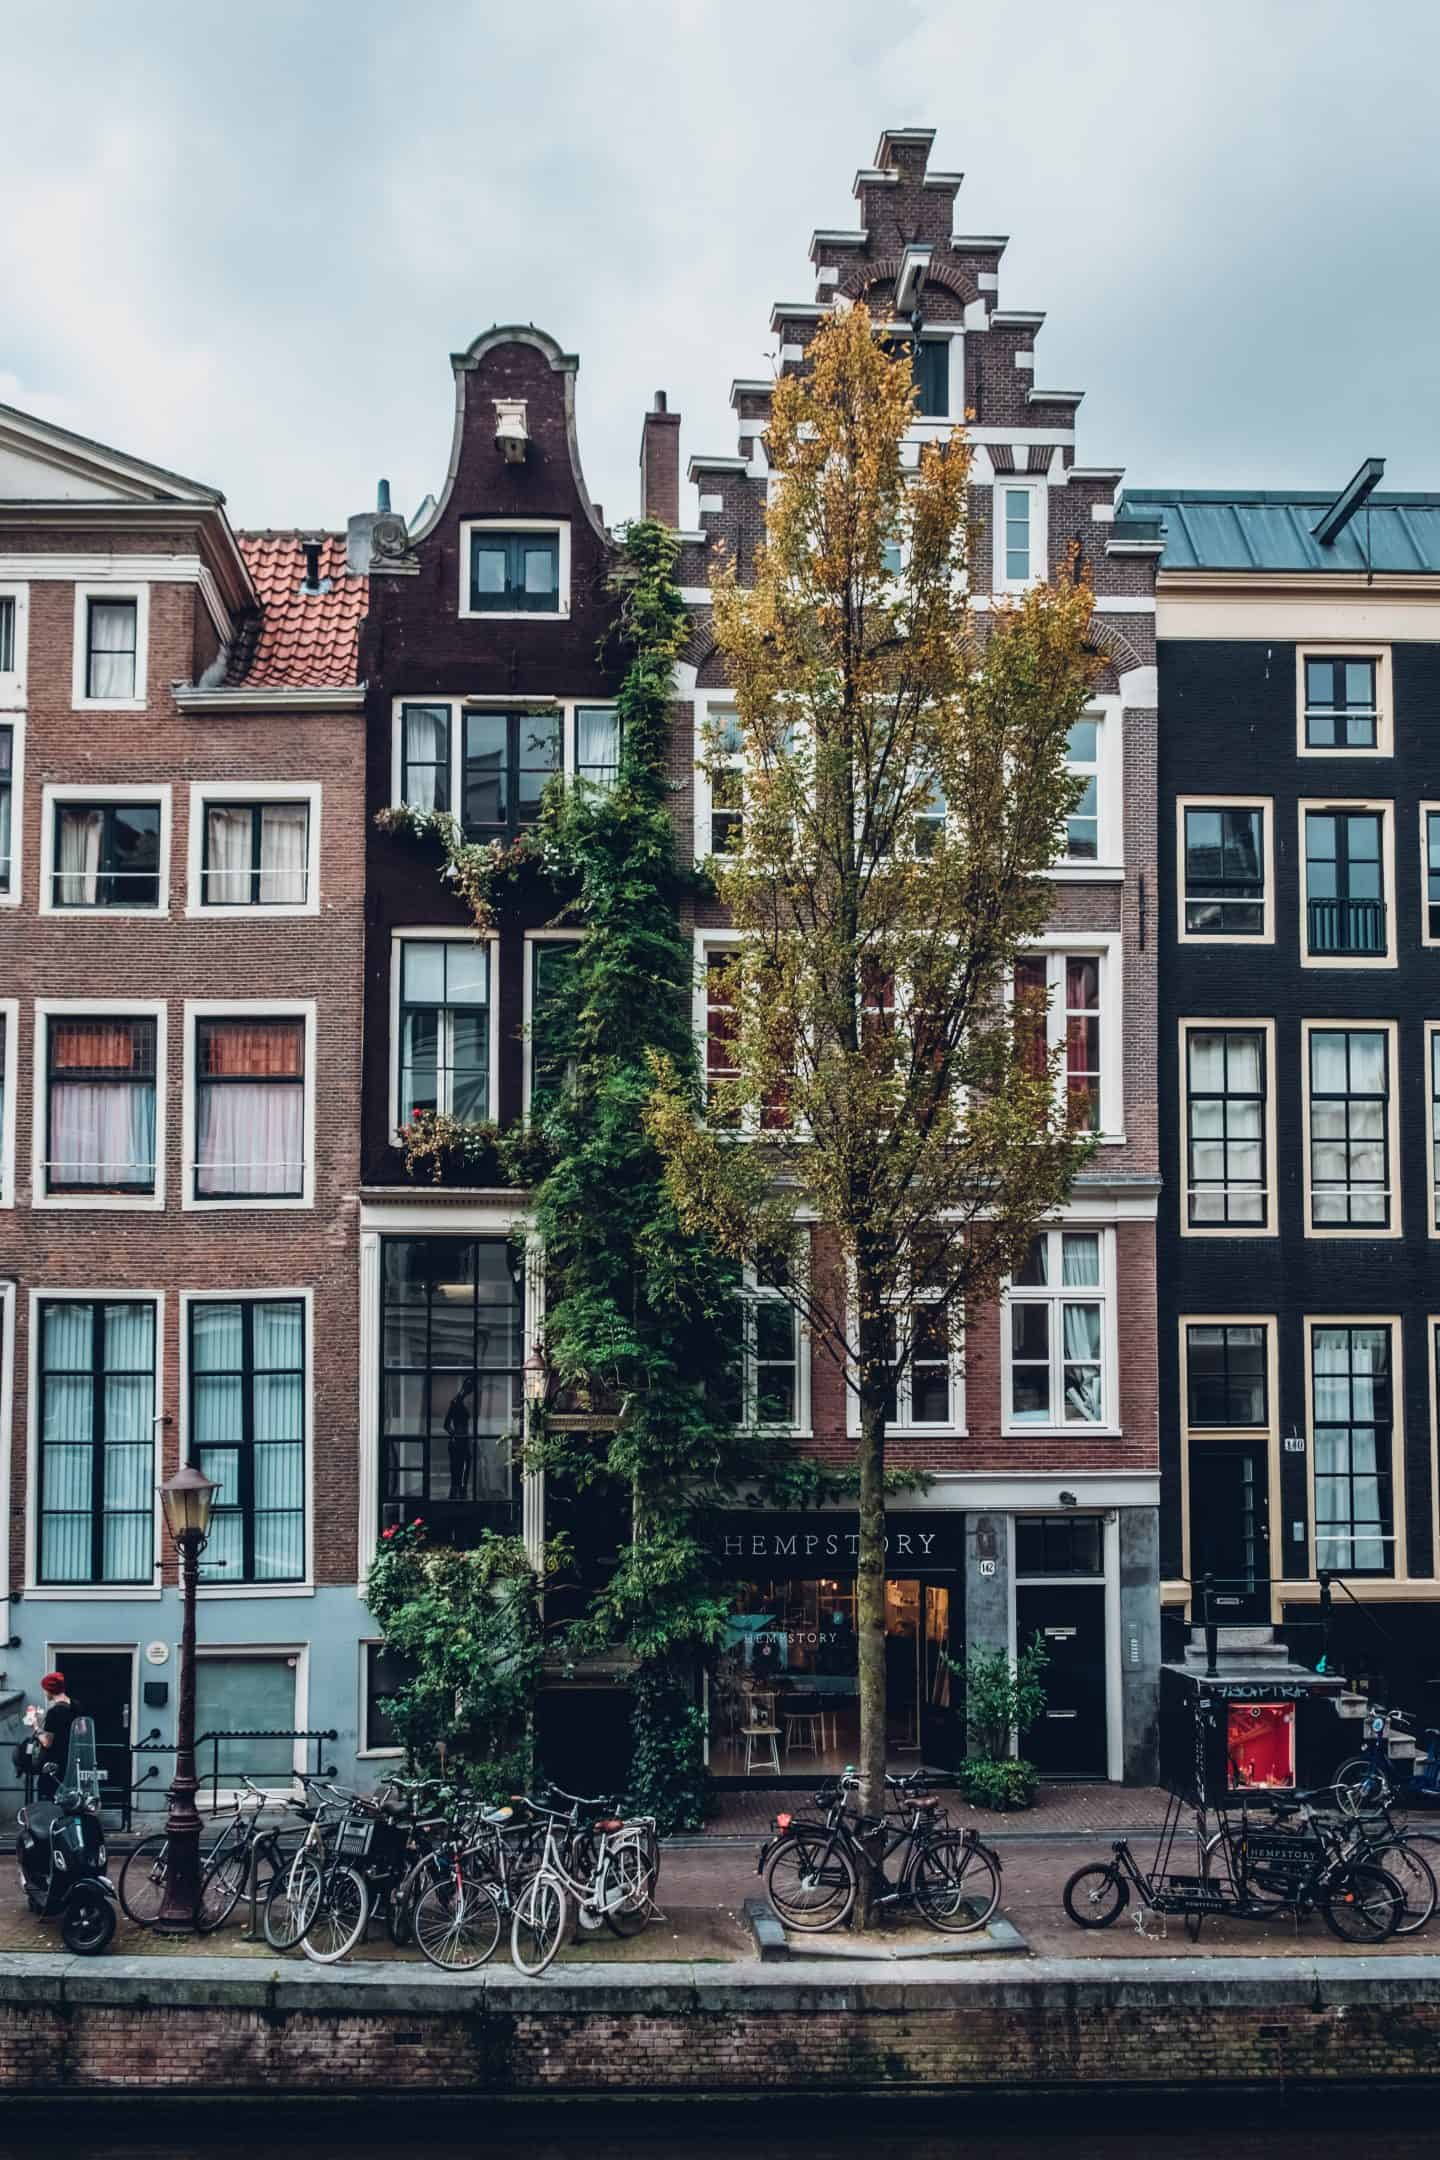 Amsterdam in Europe